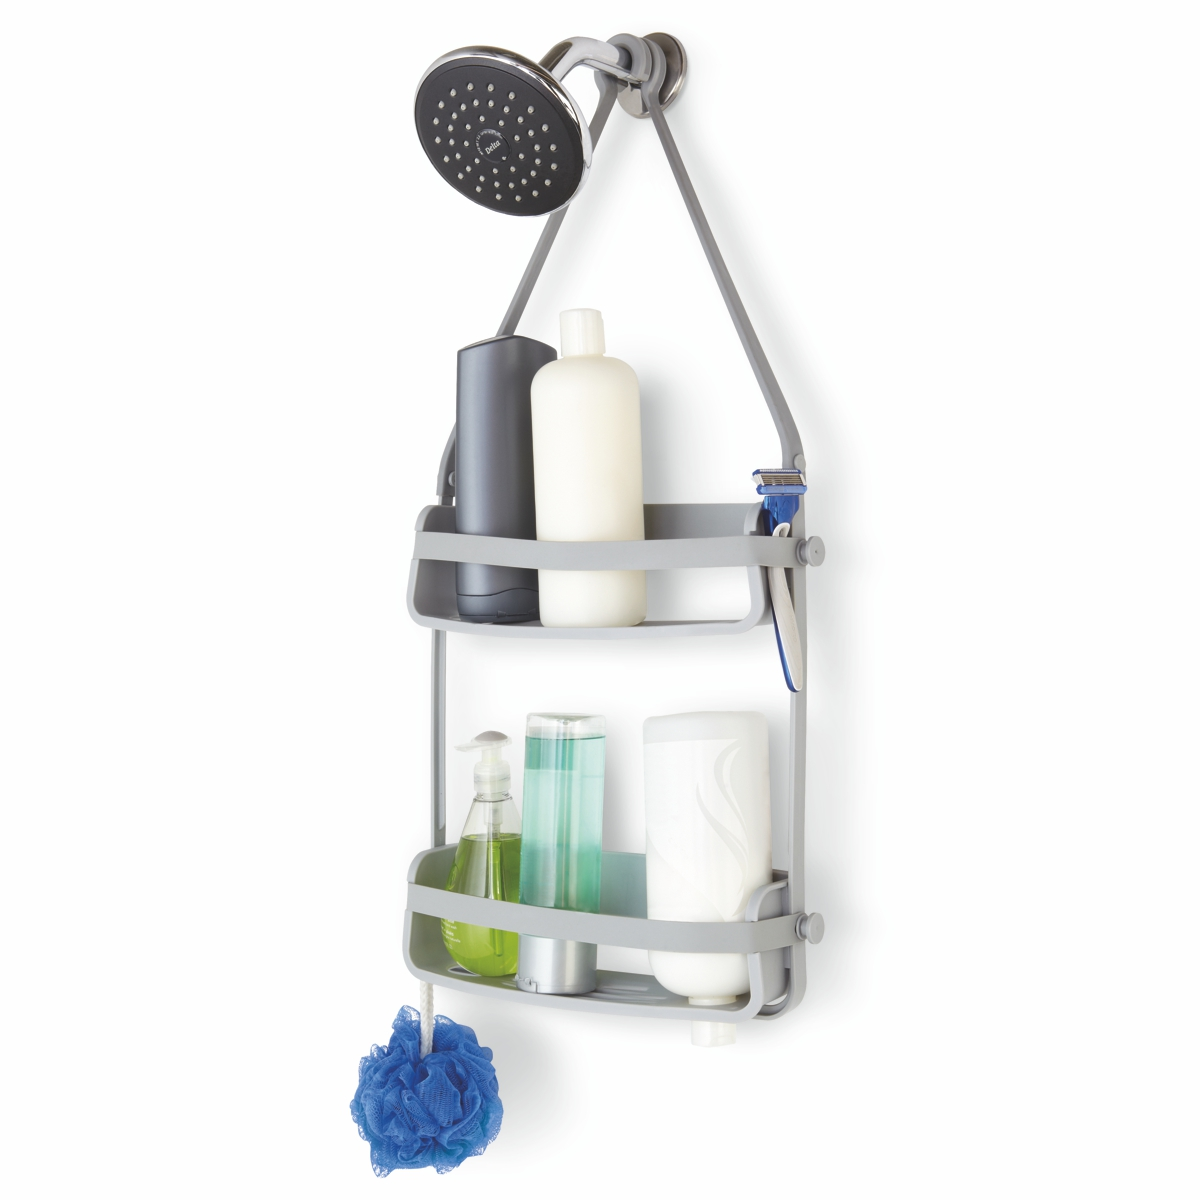 Umbra Flex Shower Caddy Grey 9.5 x 31.8 x 64.8 cm